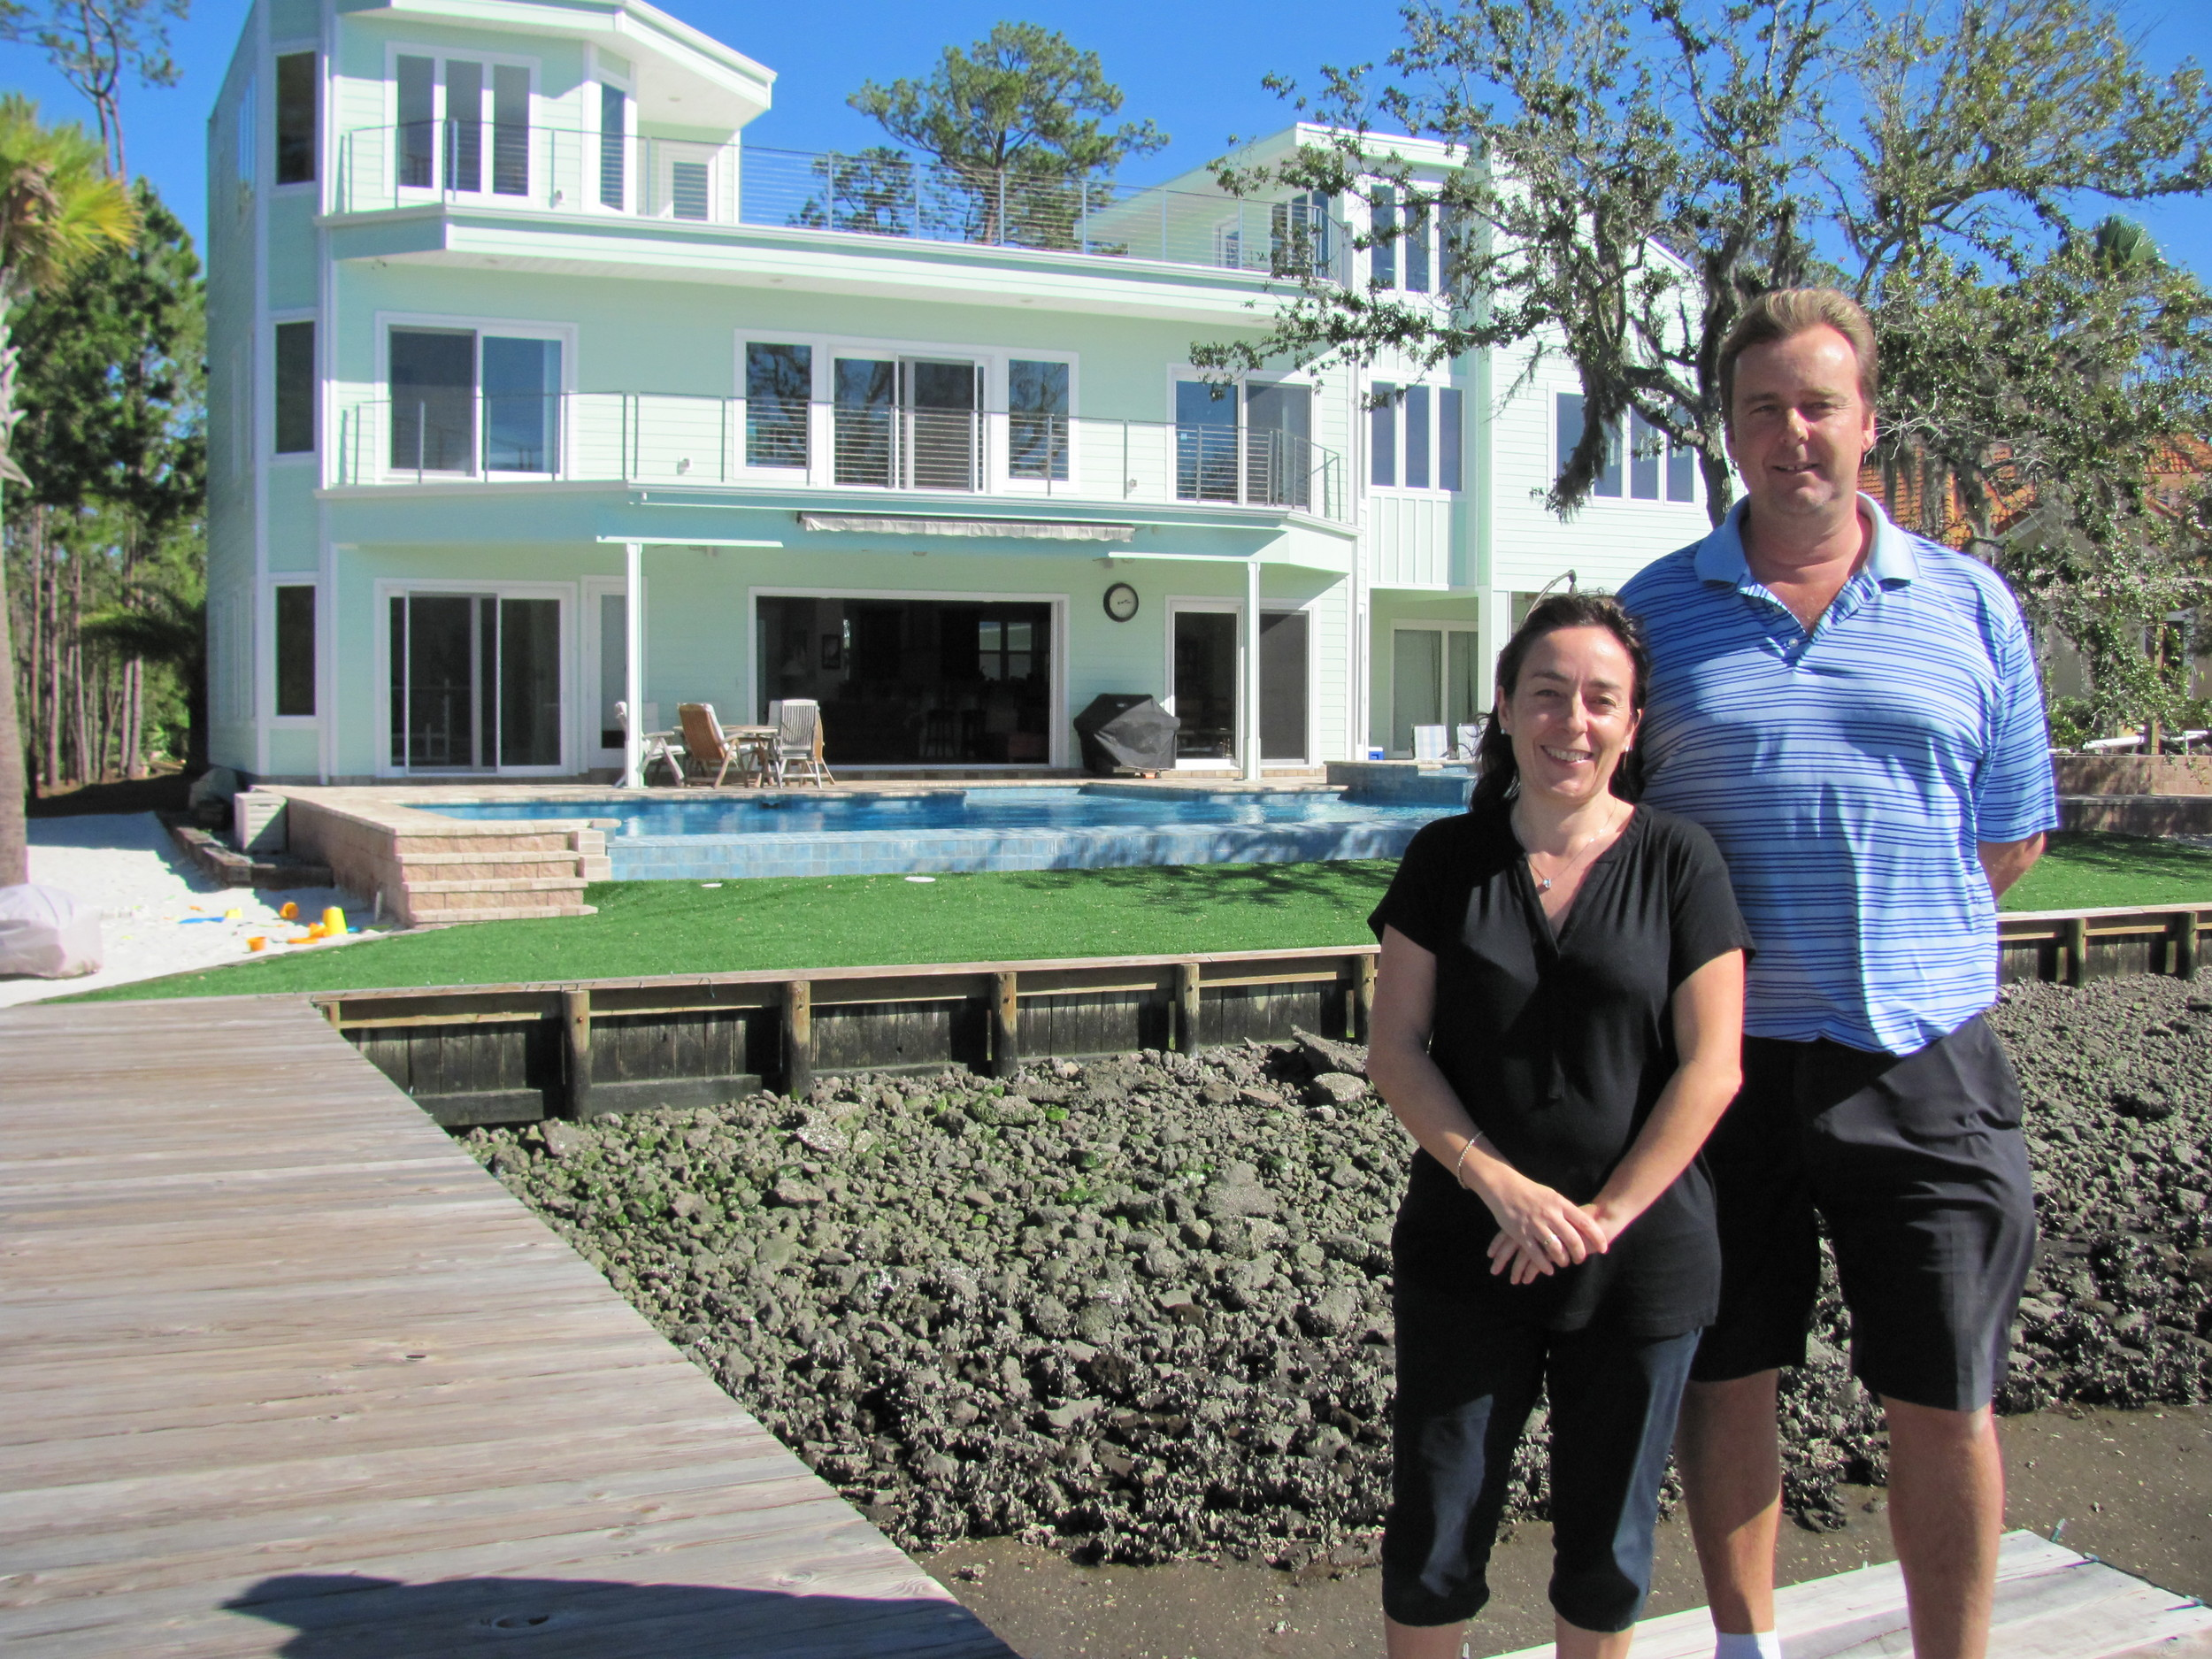 Power Tee founders Clare and Martin Wyeth at their Ponte Vedra home on North Roscoe Boulevard